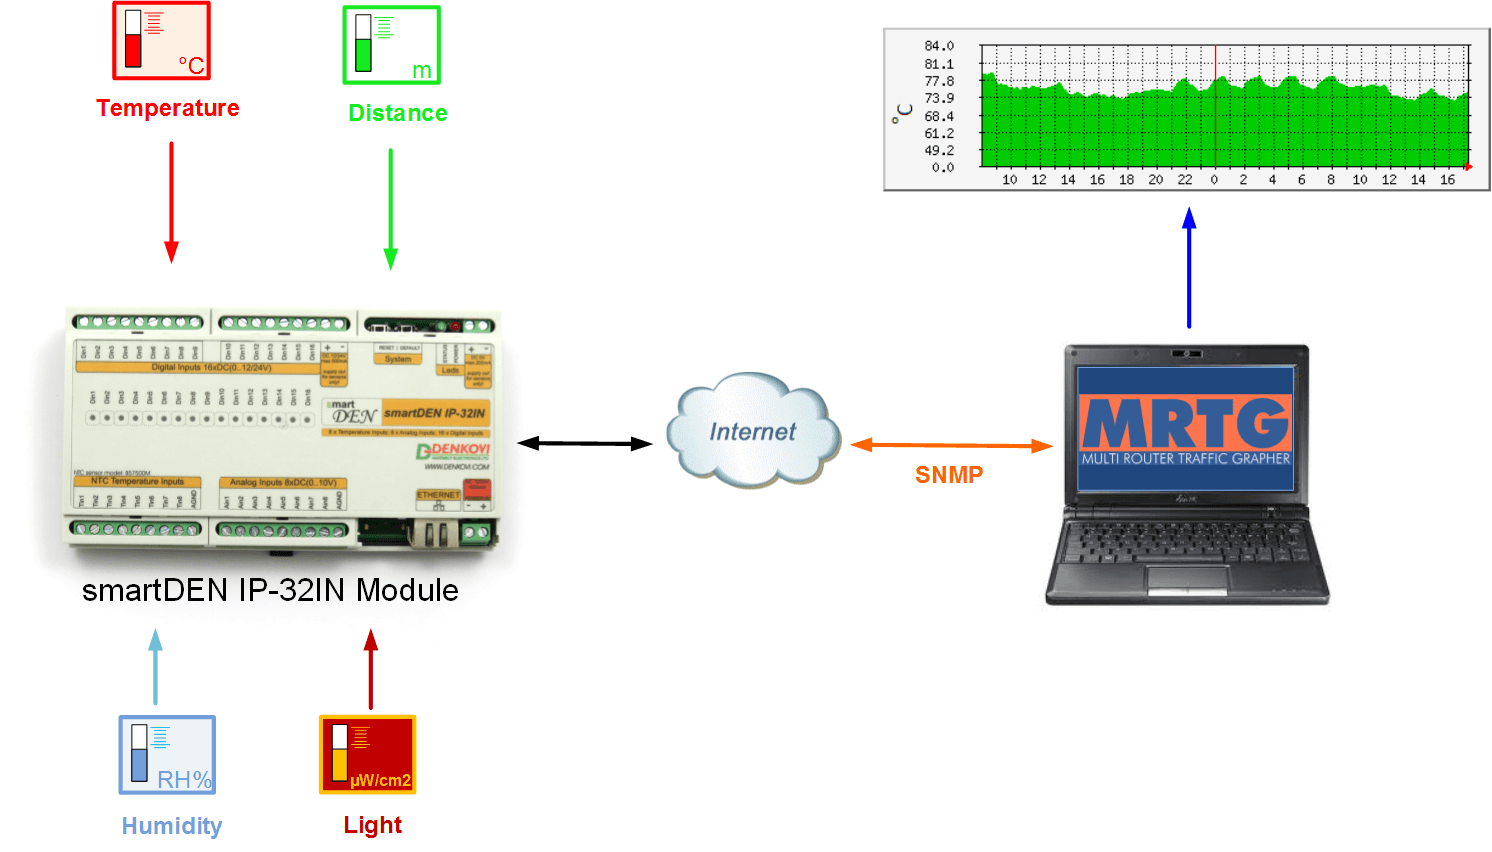 MRTG with smartDEN 32 Input Module using SNMP